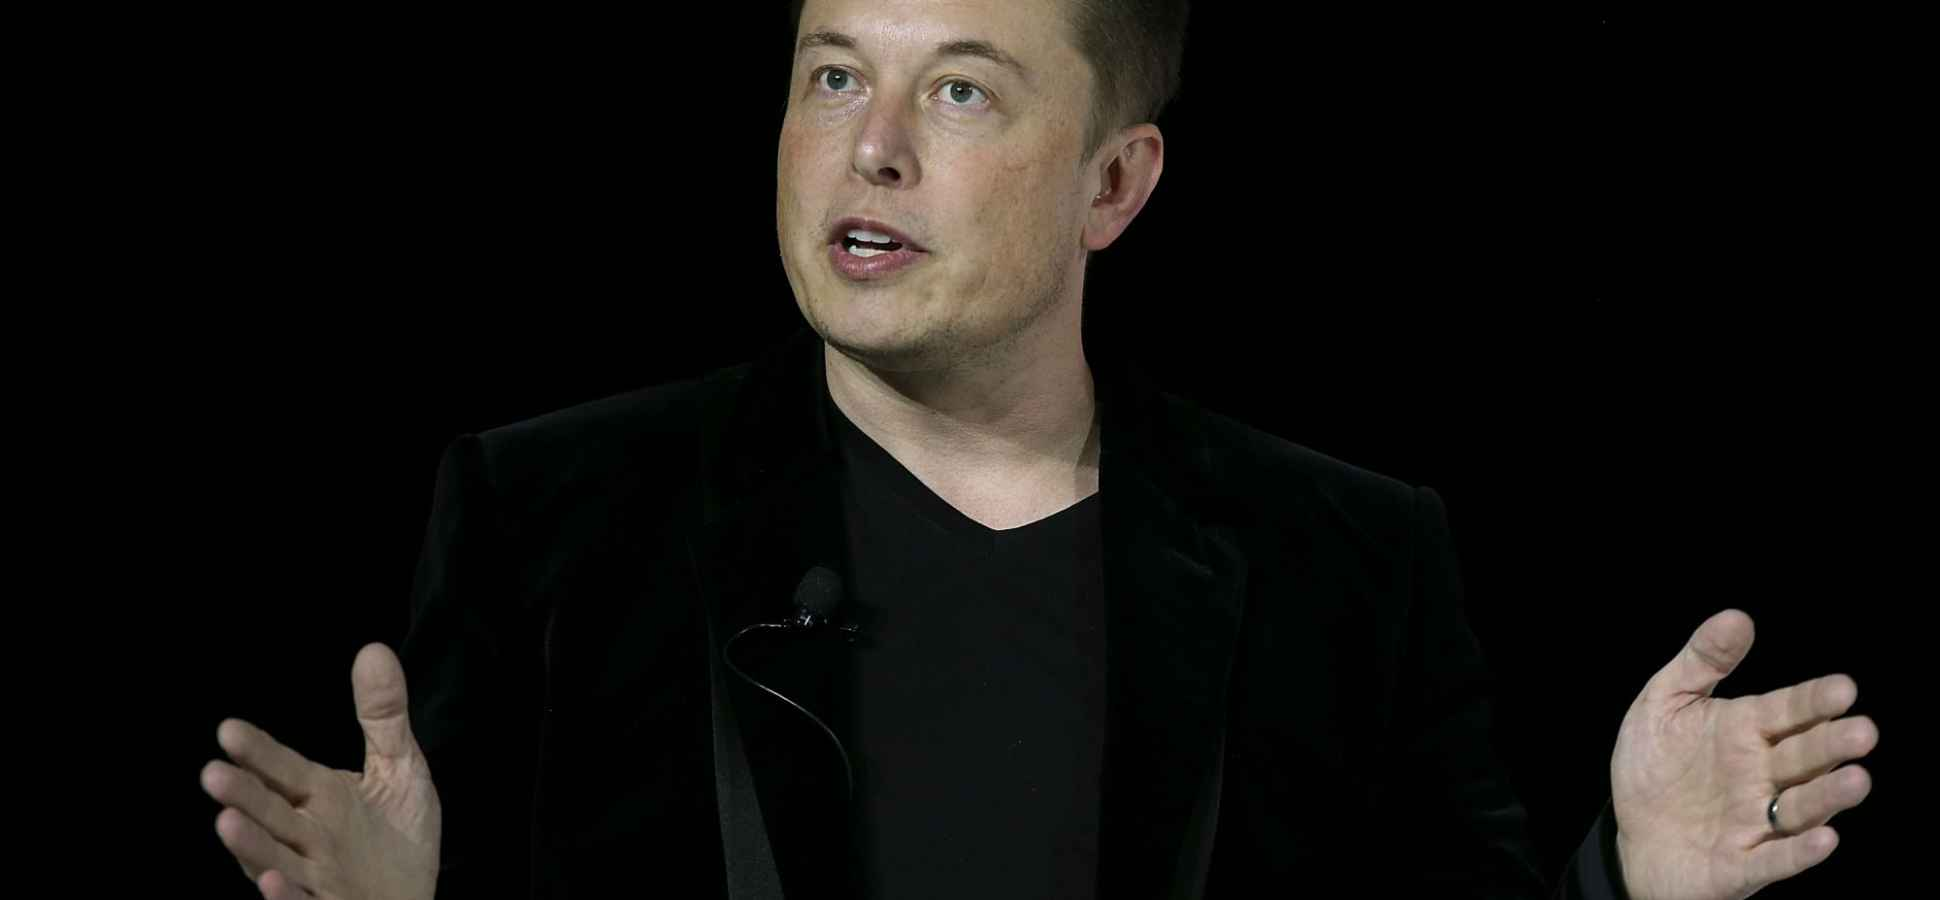 Elon Musk: Tesla and SpaceX Had Only 10 Percent Chance of Success